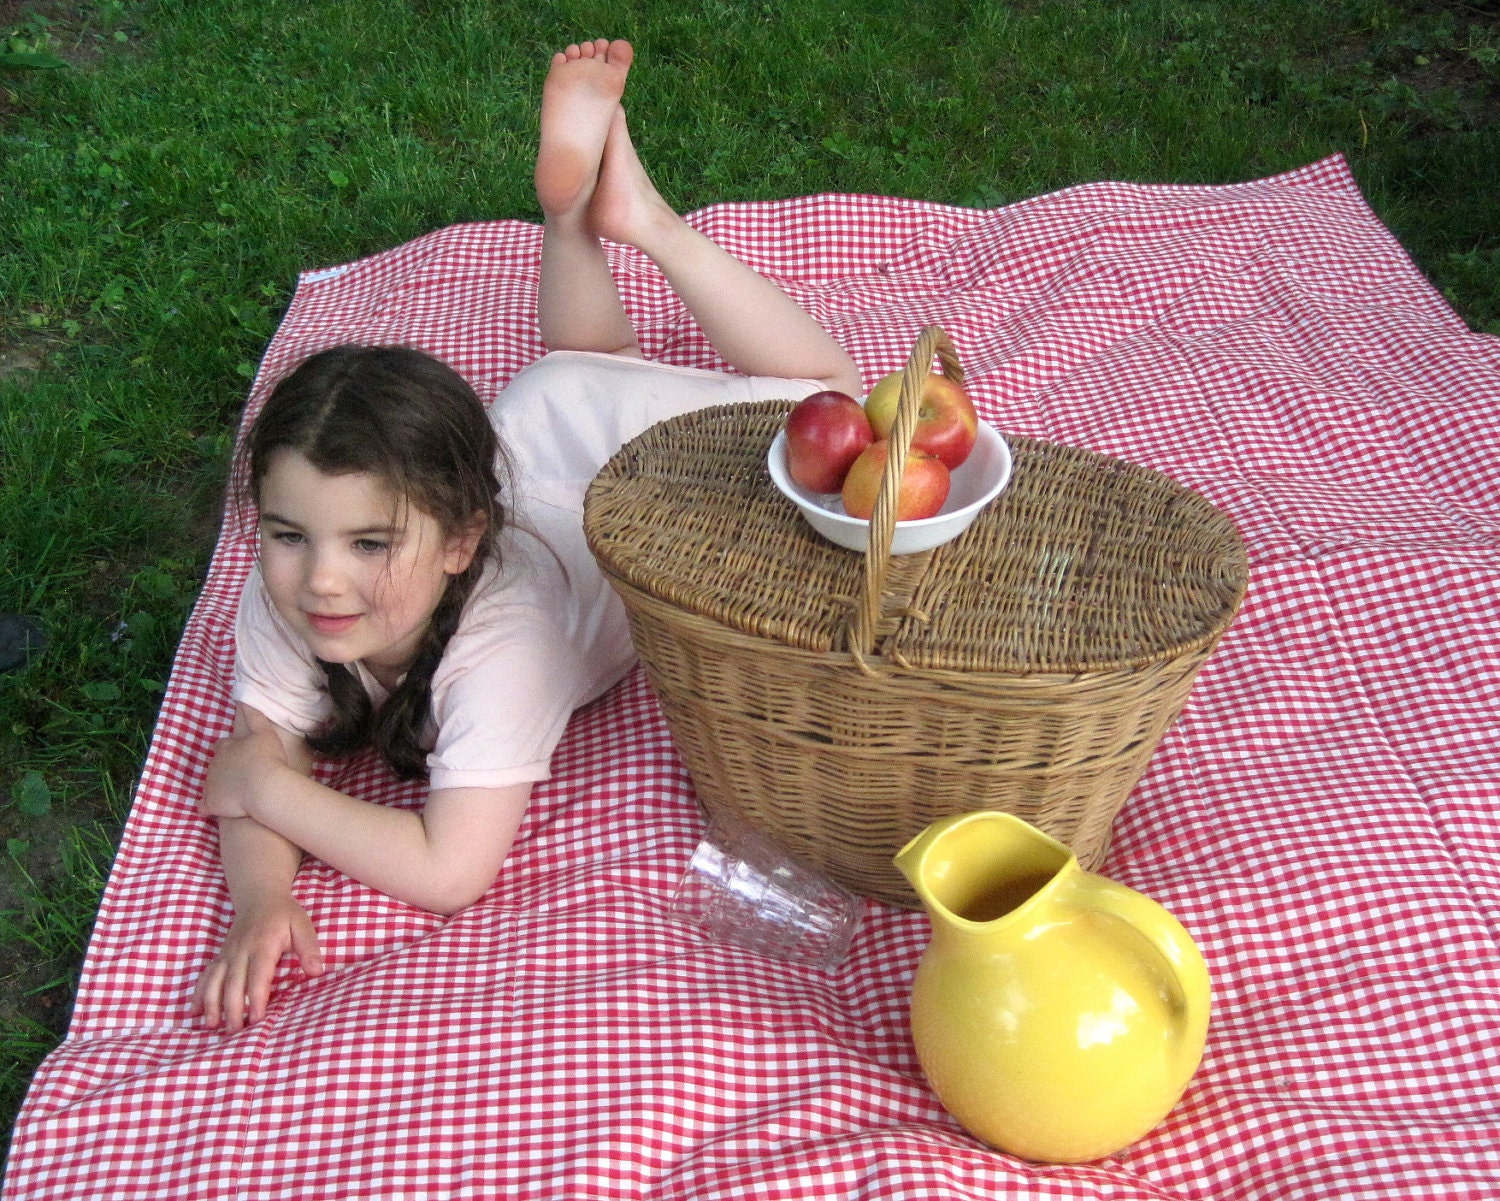 WATERPROOF Picnic Blanket Non-Toxic / Eco Friendly Retro Summer Beach Blanket in Red Gingham (Ready to Ship) - SewnNatural